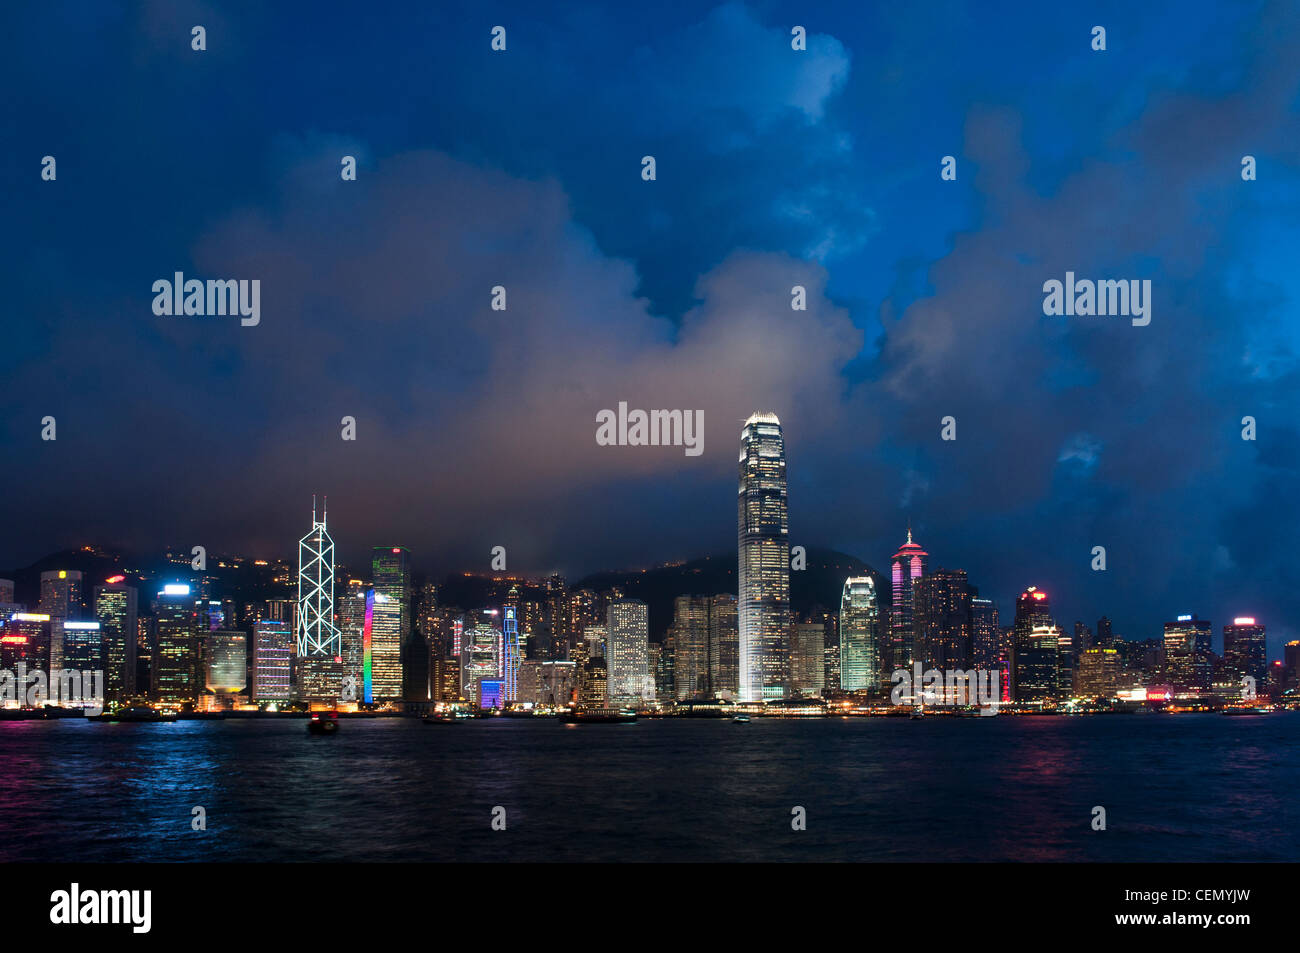 Hong Kong Island At Night During Light Show Stock Photo 43486657